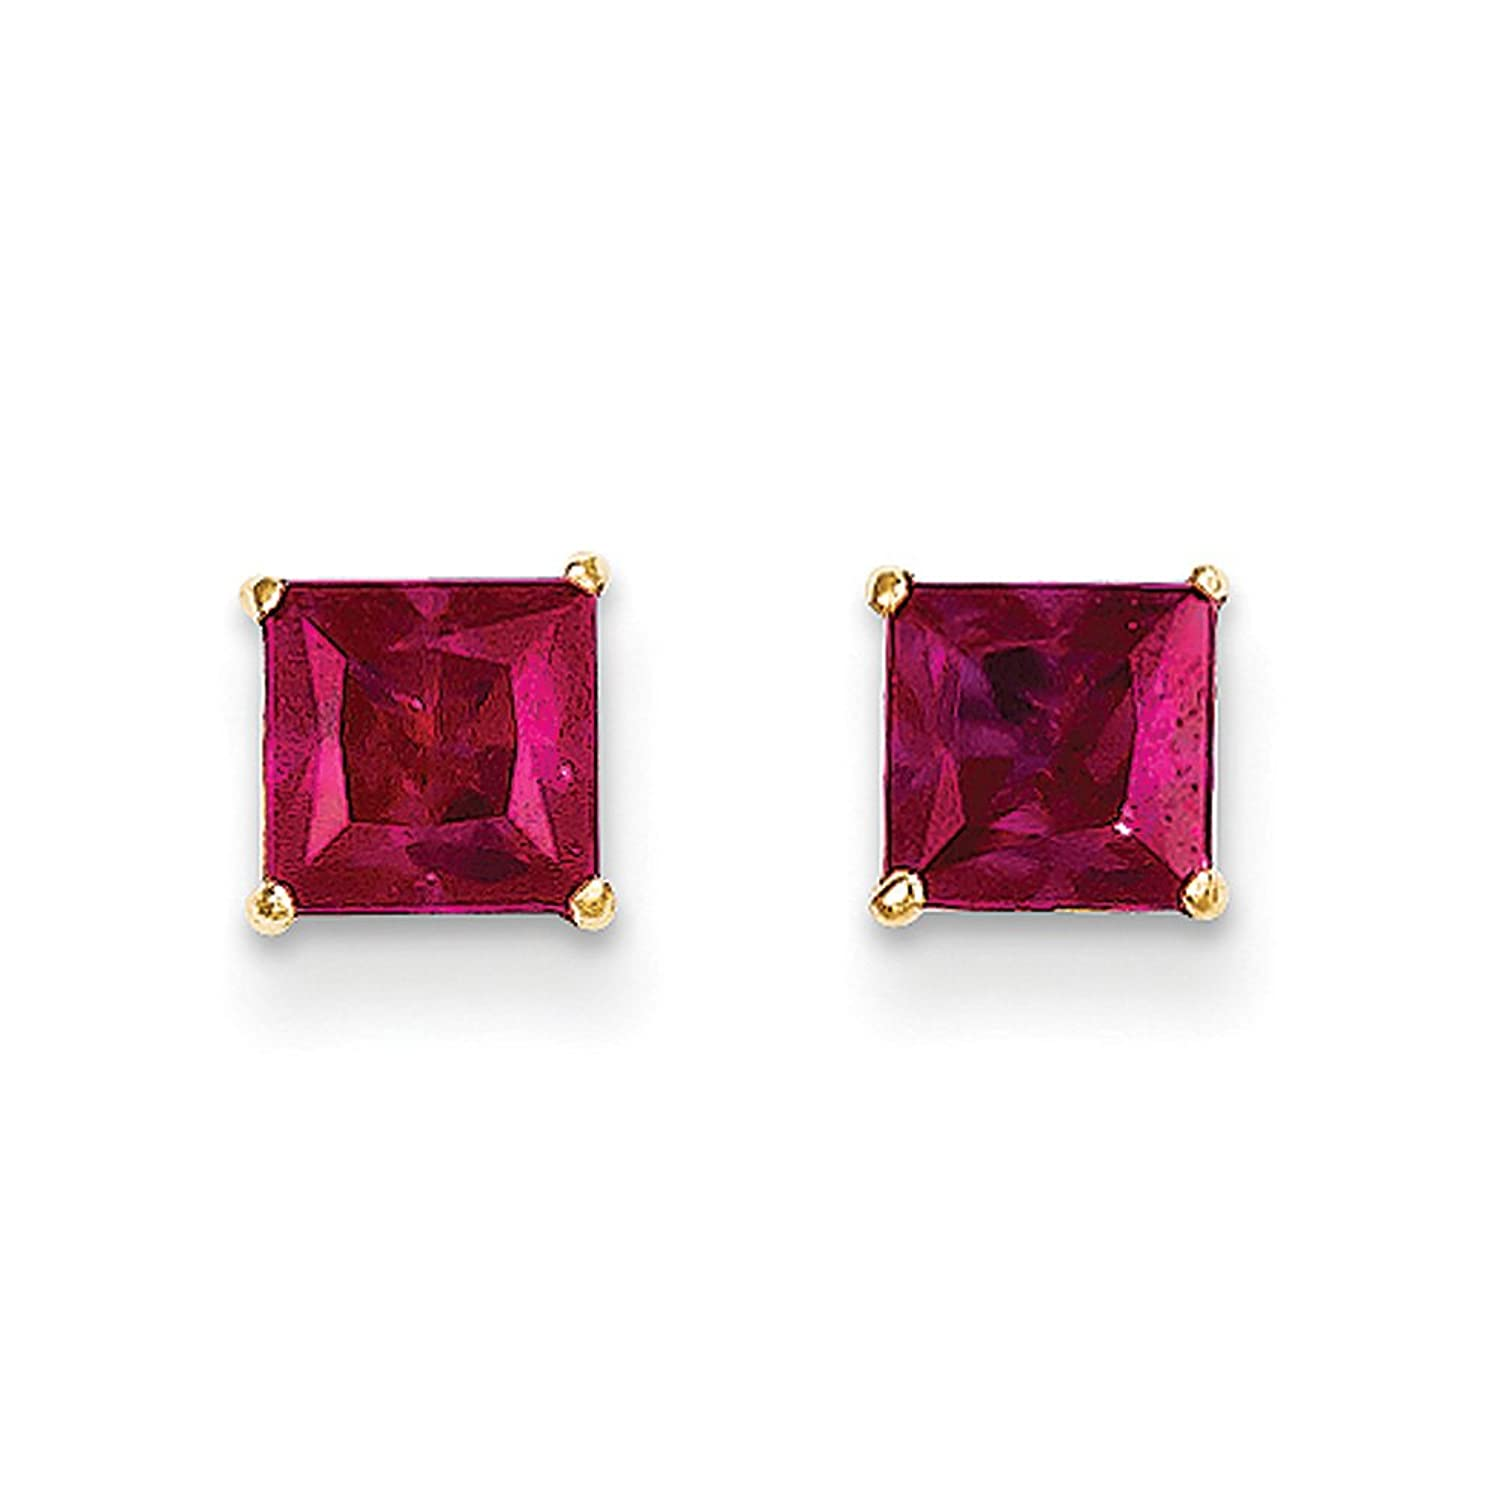 gold in with ruby diamonds sterling and ct silver jewellery earrings natural itm